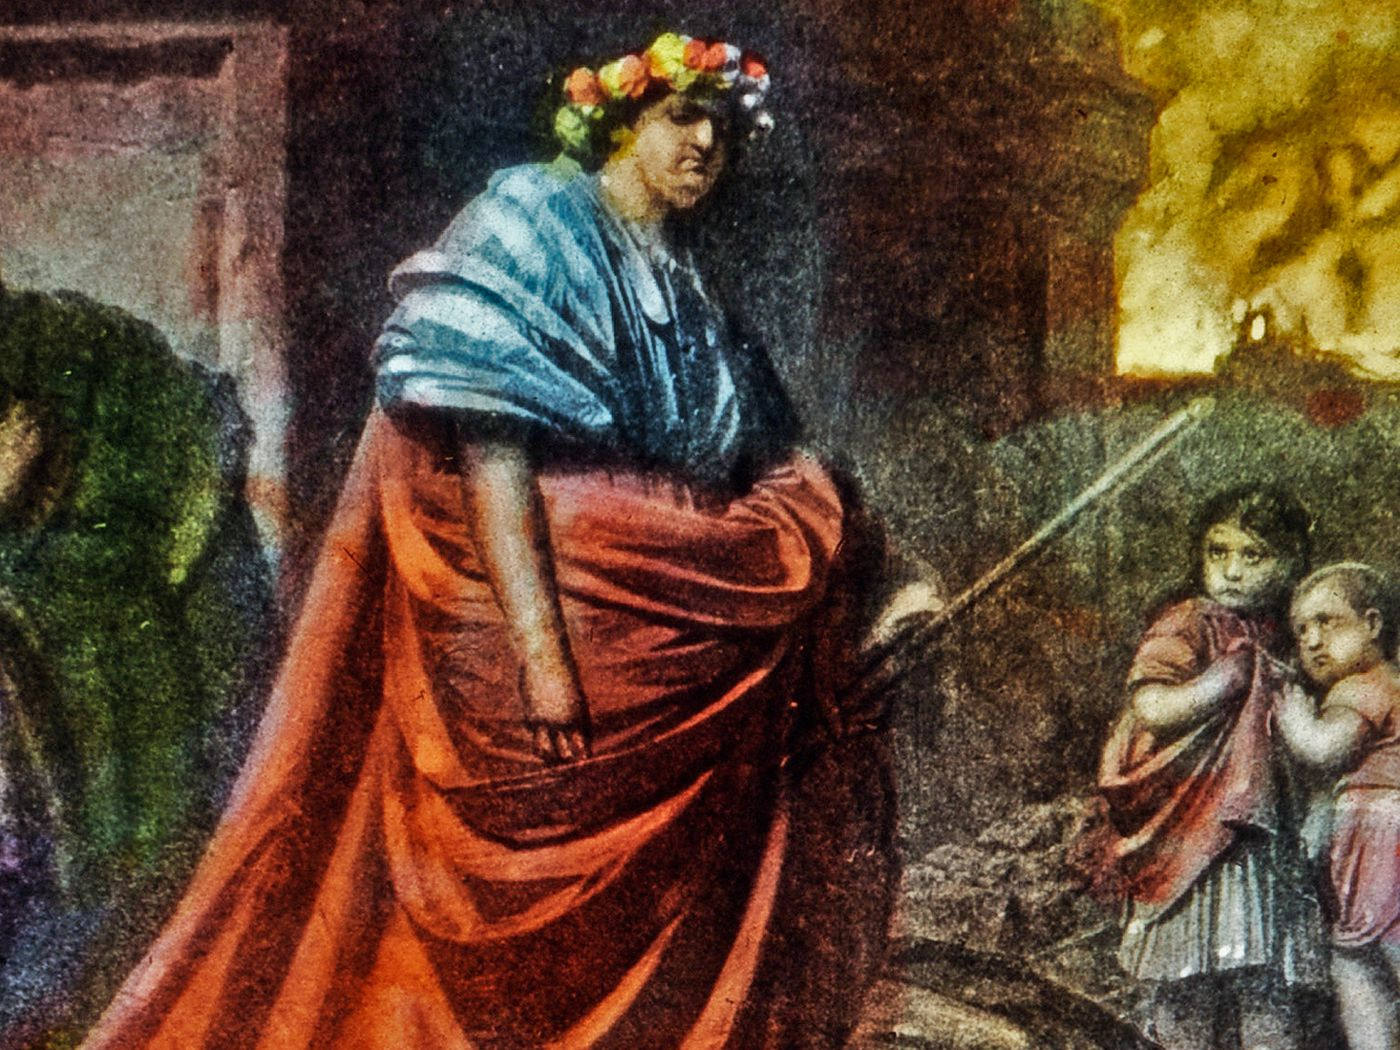 Why ancient Rome kept choosing bizarre and perverted emperors - Vox